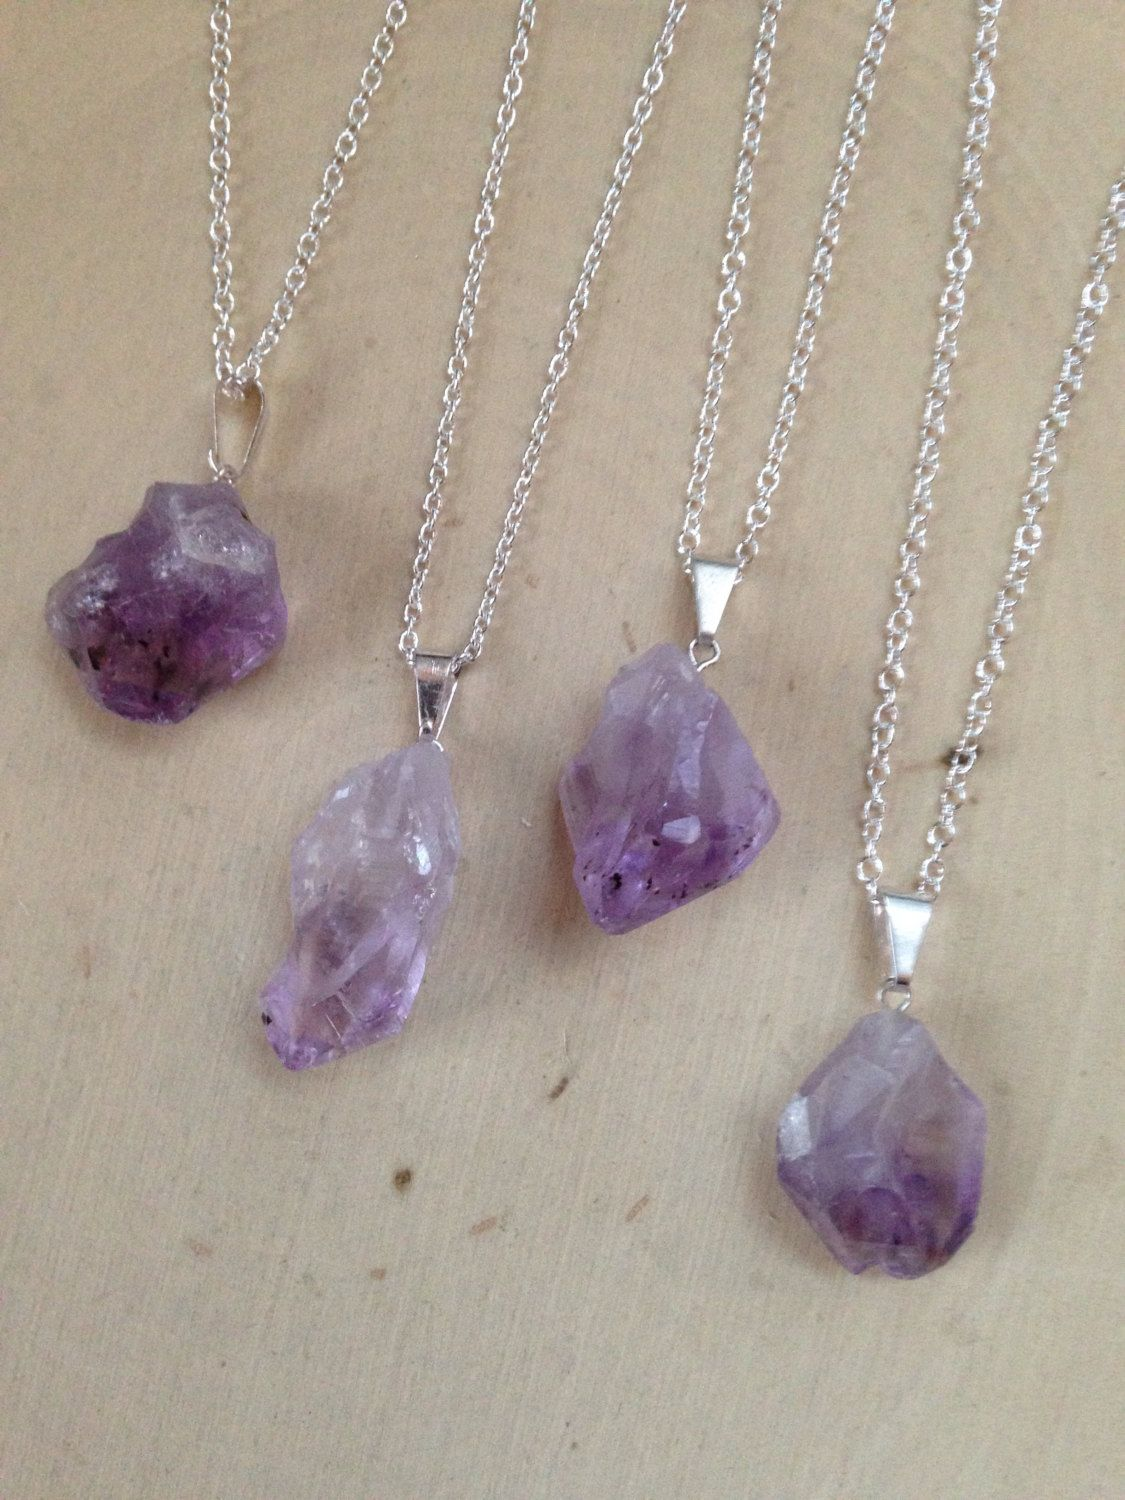 necklace raw sugar sugarmango cut com amethyst pendant product notonthehighstreet rough original mango by